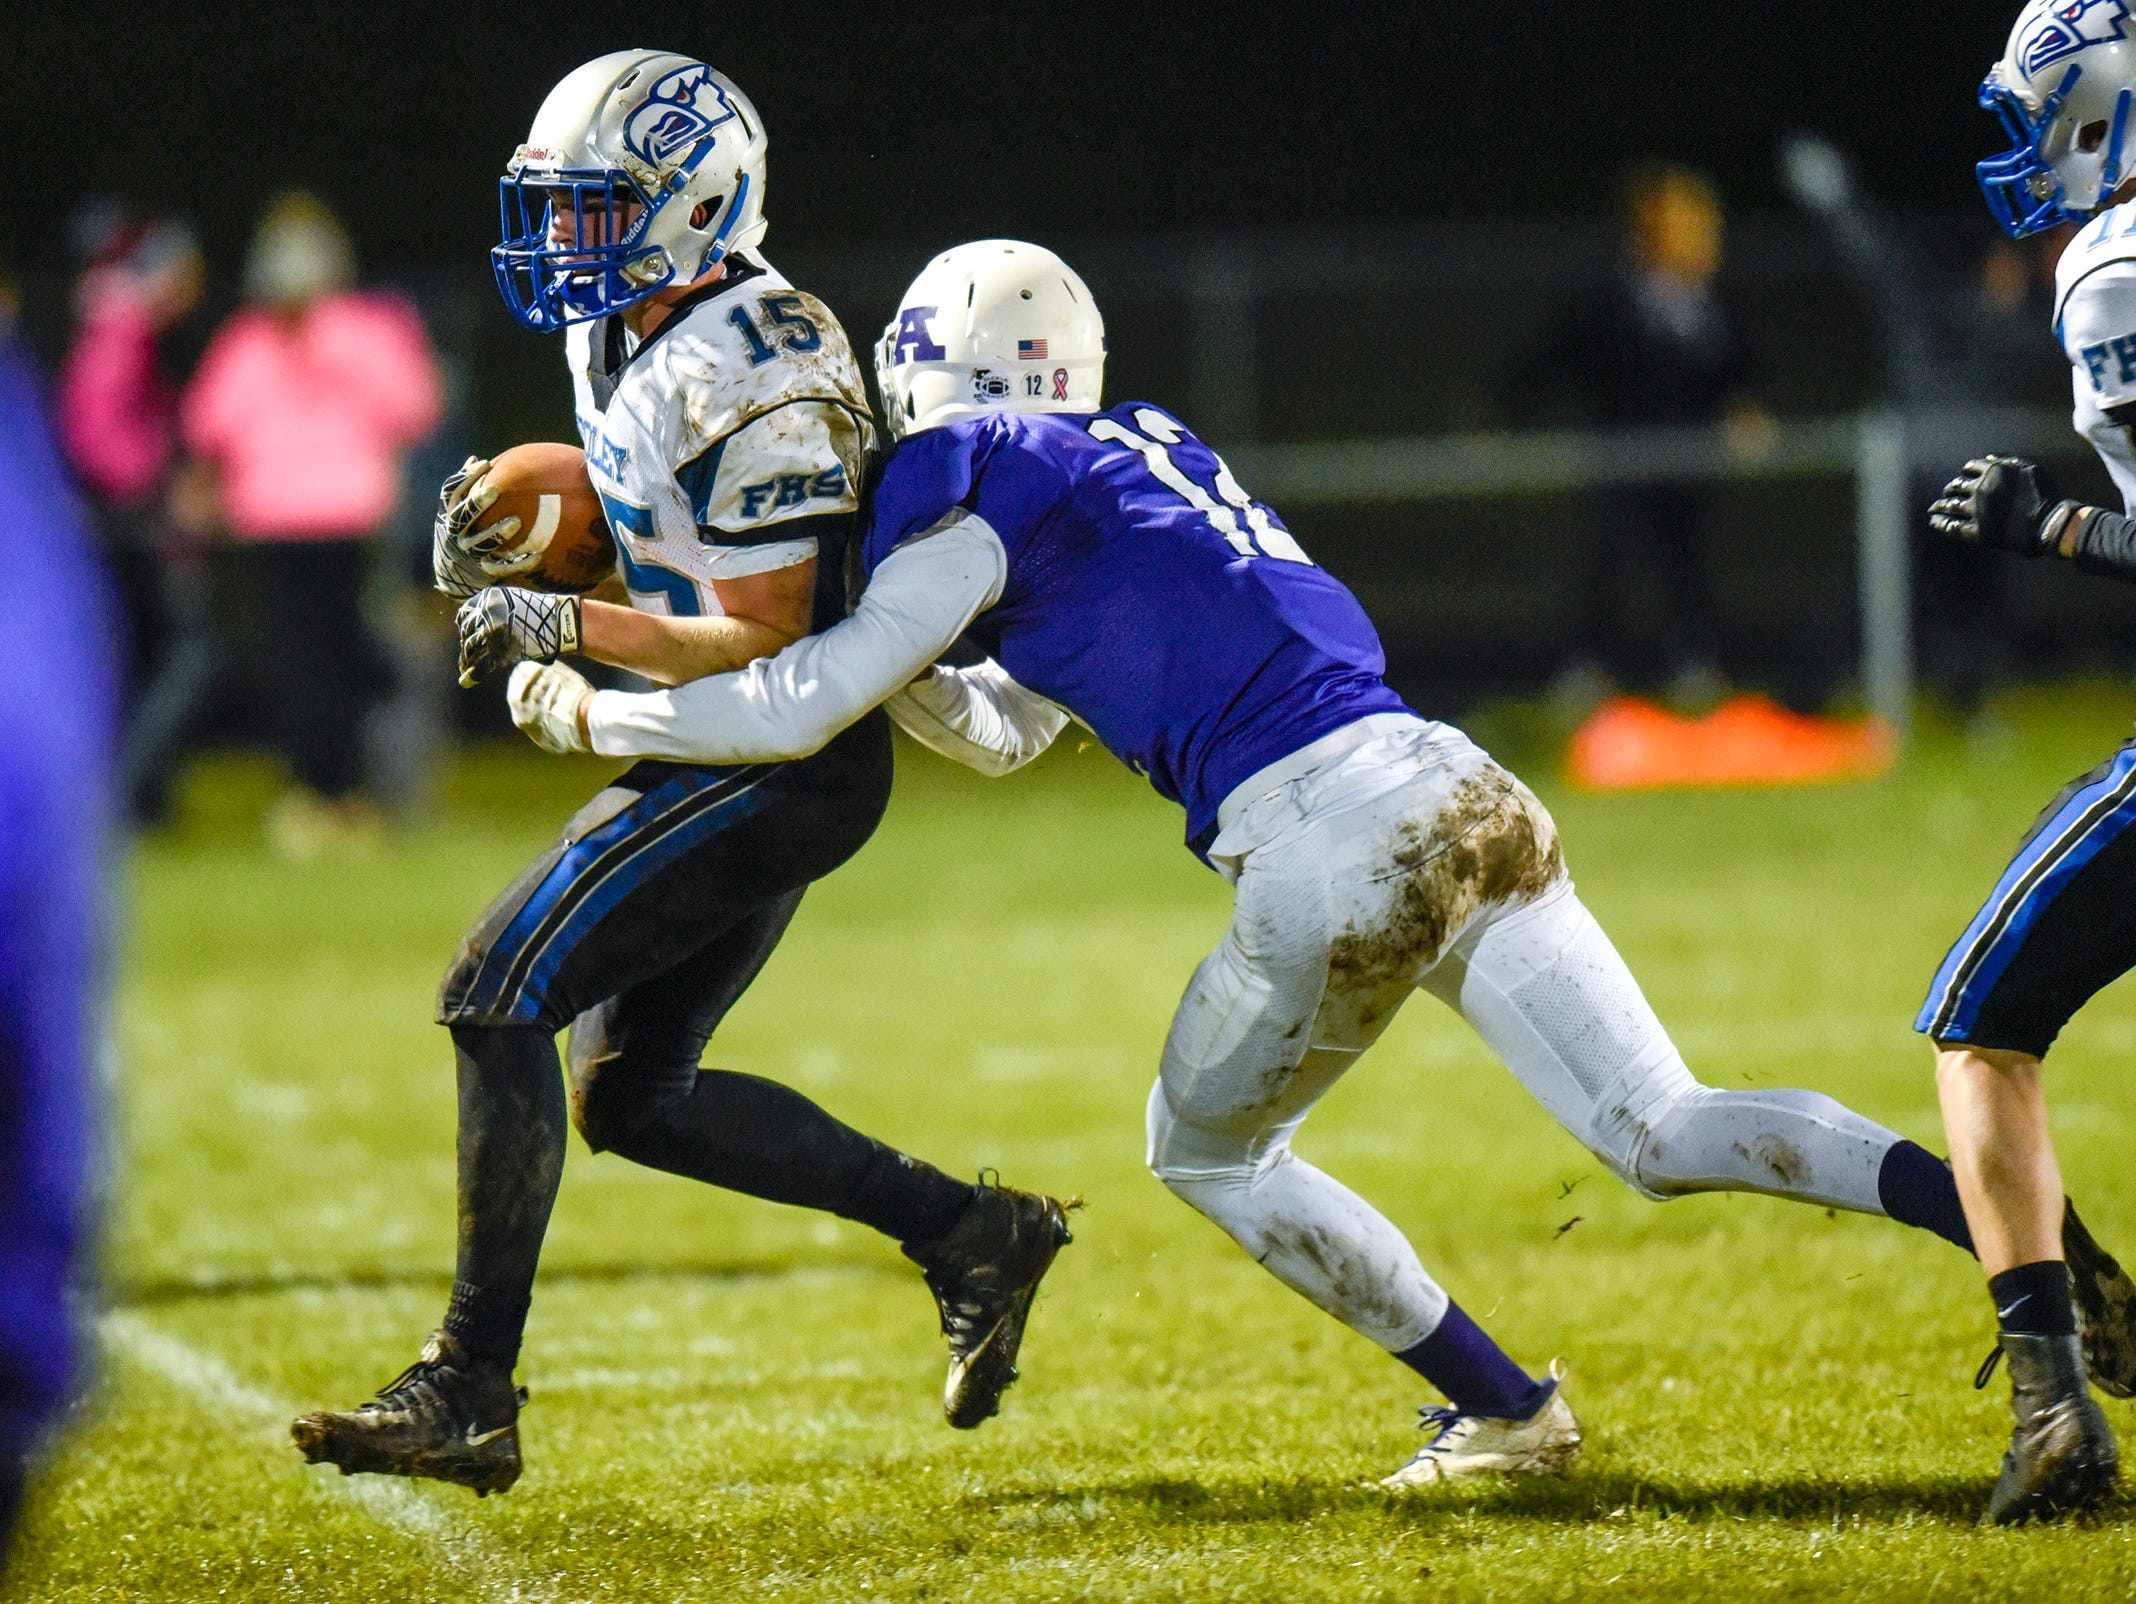 Foley running back Mark Dierkes is tackled by Albany's Ben Buttweiler during the first half Friday, Oct. 12, in Albany.